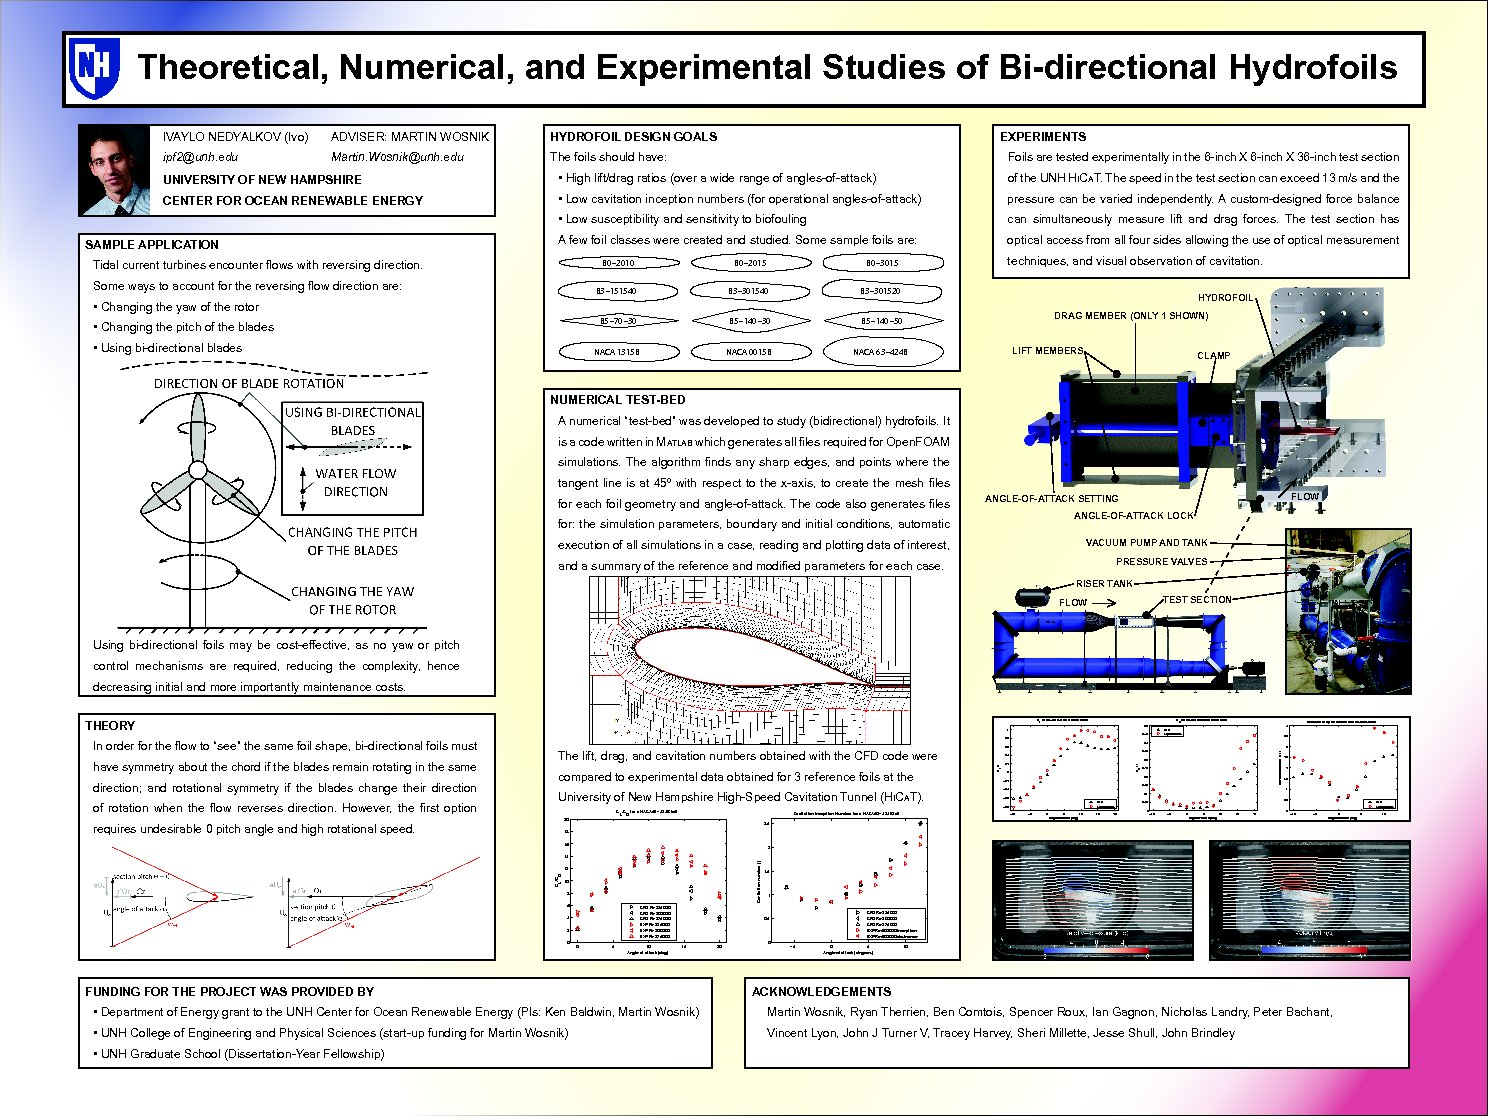 Theoretical, Numerical, And Experimental Studies Of Bi-Directional Hydrofoils by ivaylo